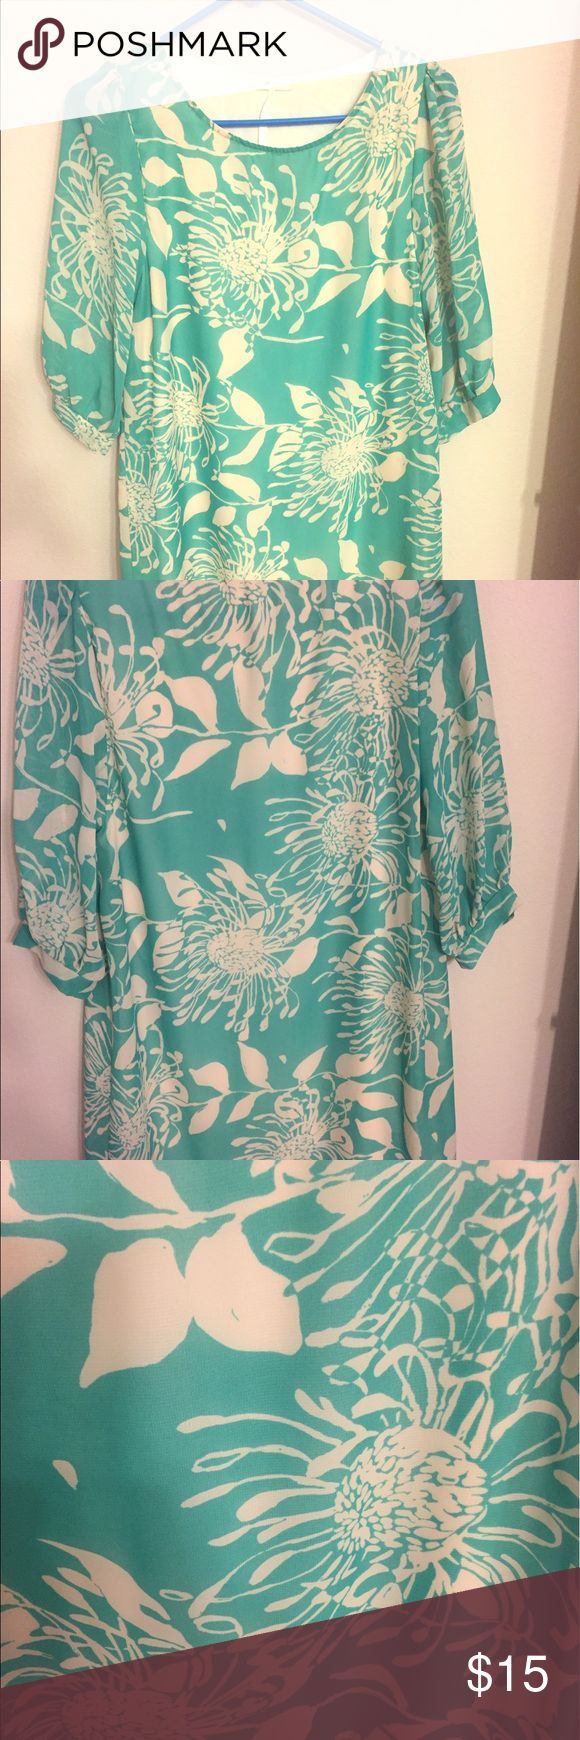 Mint green shirt dress with floral pattern. Comfortable and flattering shirt dress with fun floral pattern in mint green. Looks Great with boots or sandals. Excellent condition. Dresses Mini